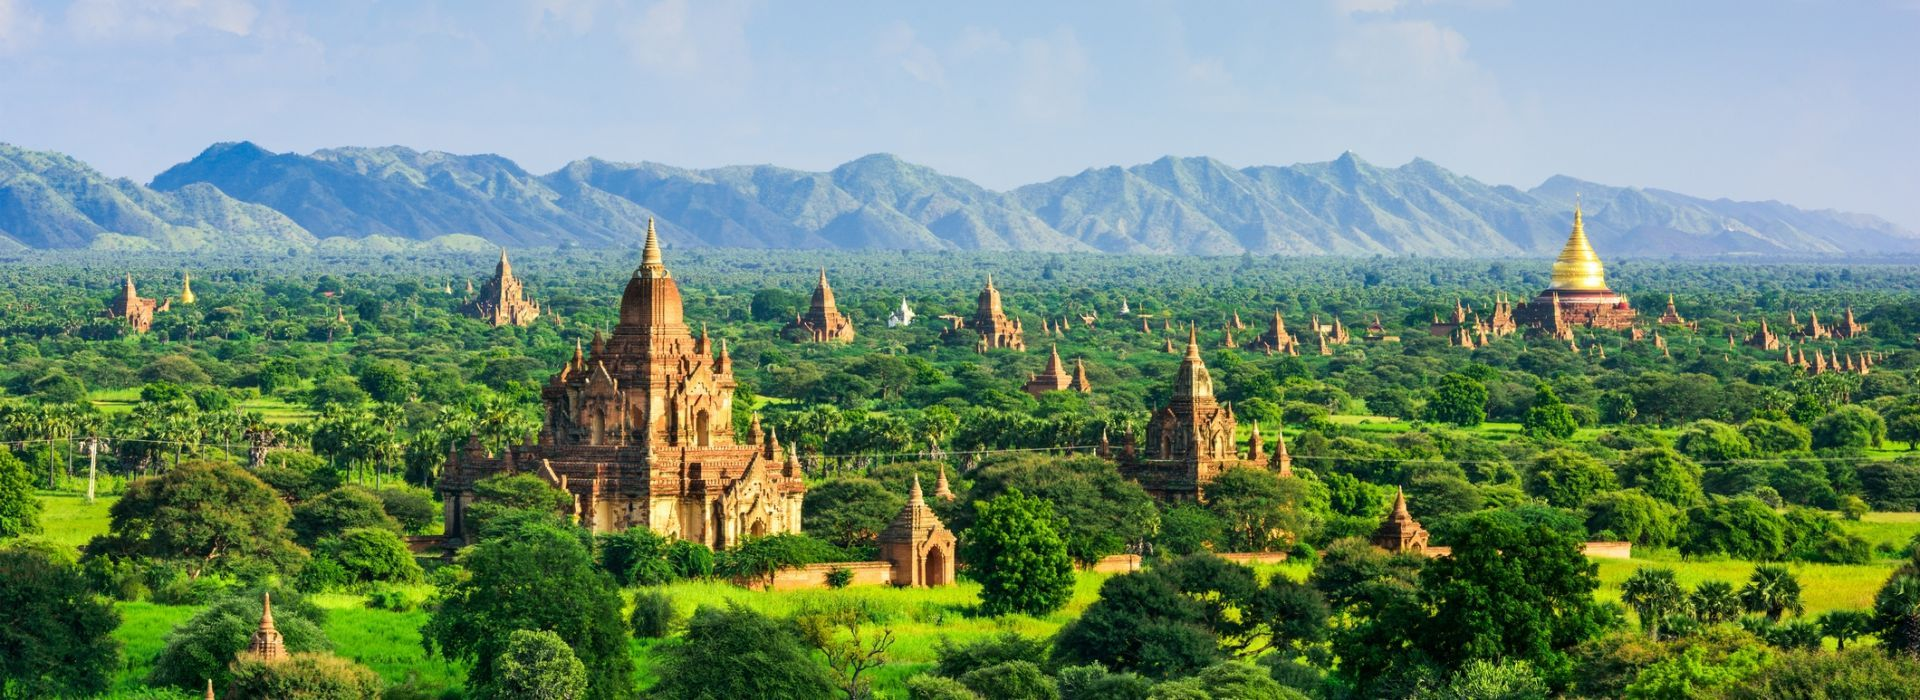 Sightseeing, attractions, culture and history Tours in Bagan